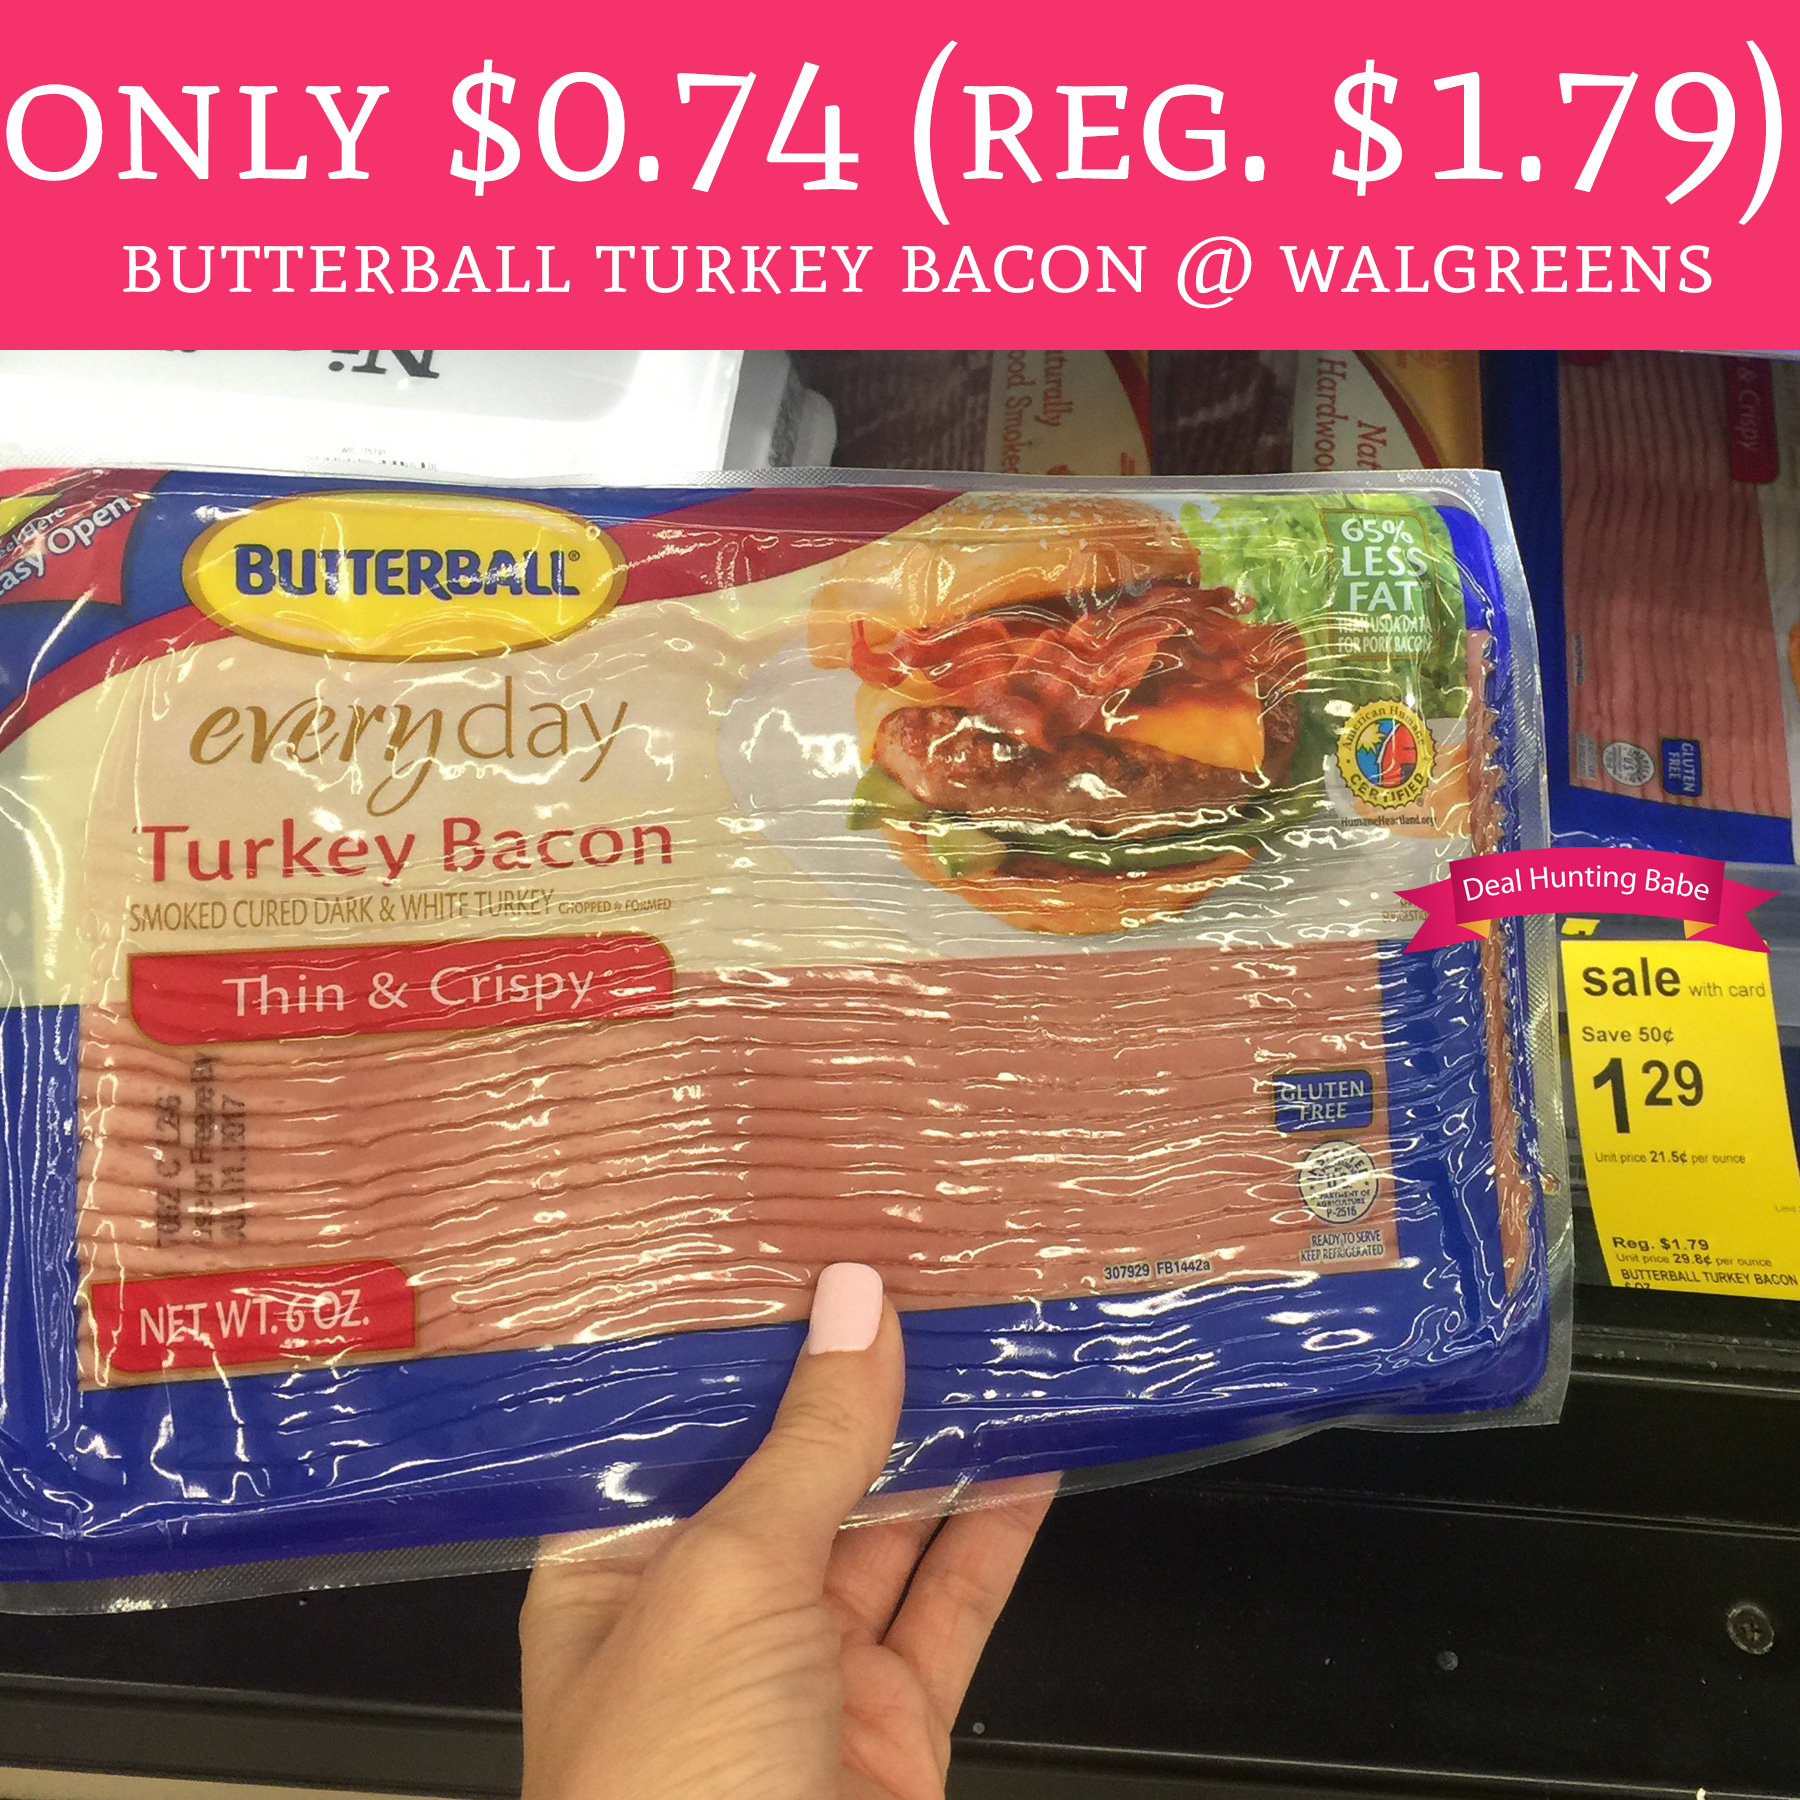 Butterball Turkey Bacon on Lighted Makeup Mirror At Walgreens